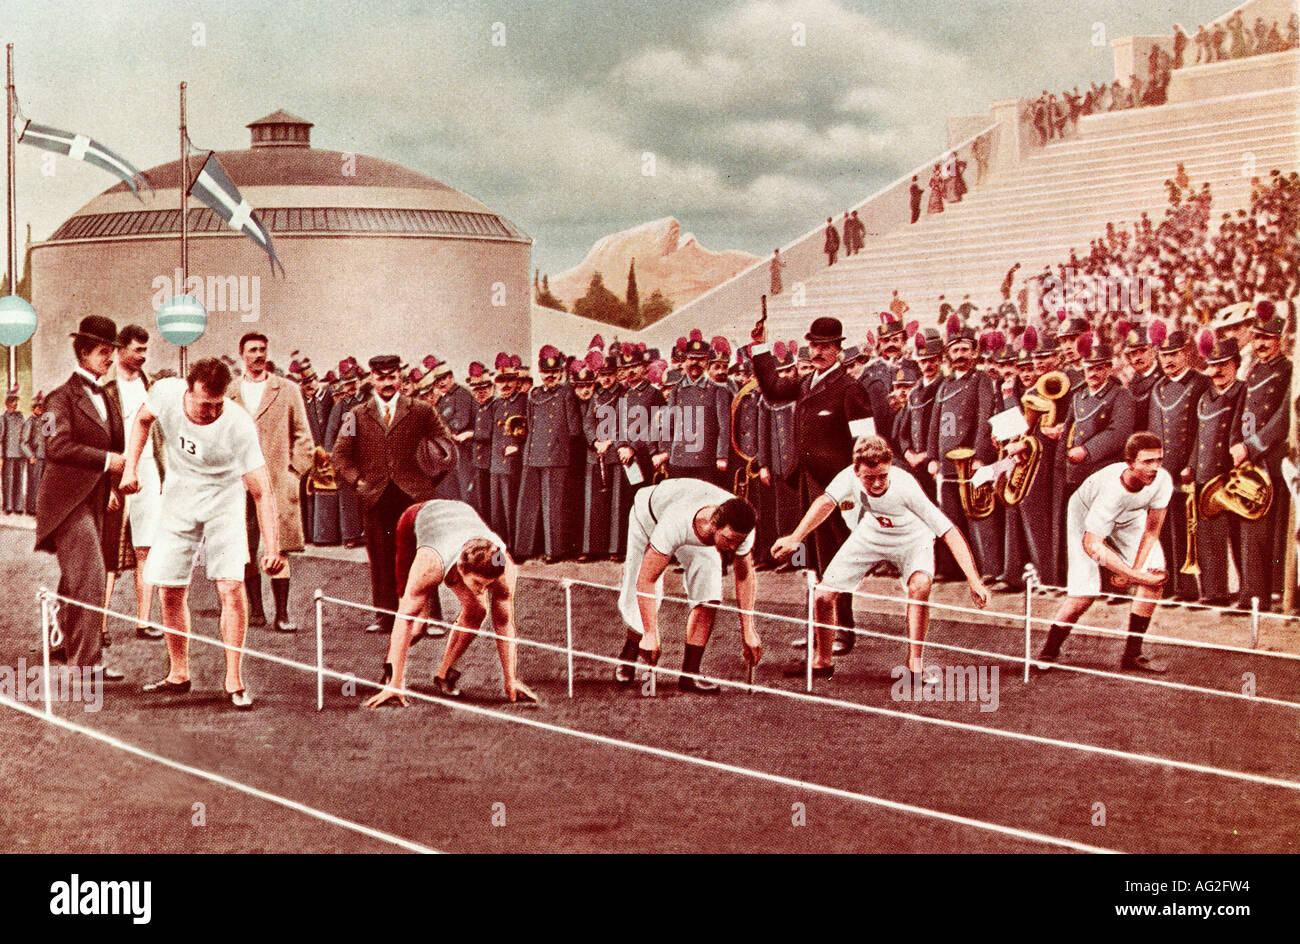 Sports, Olympic Games, finale, 100 metre run, Athens, Greece,1896, Additional-Rights-Clearances-NA - Stock Image